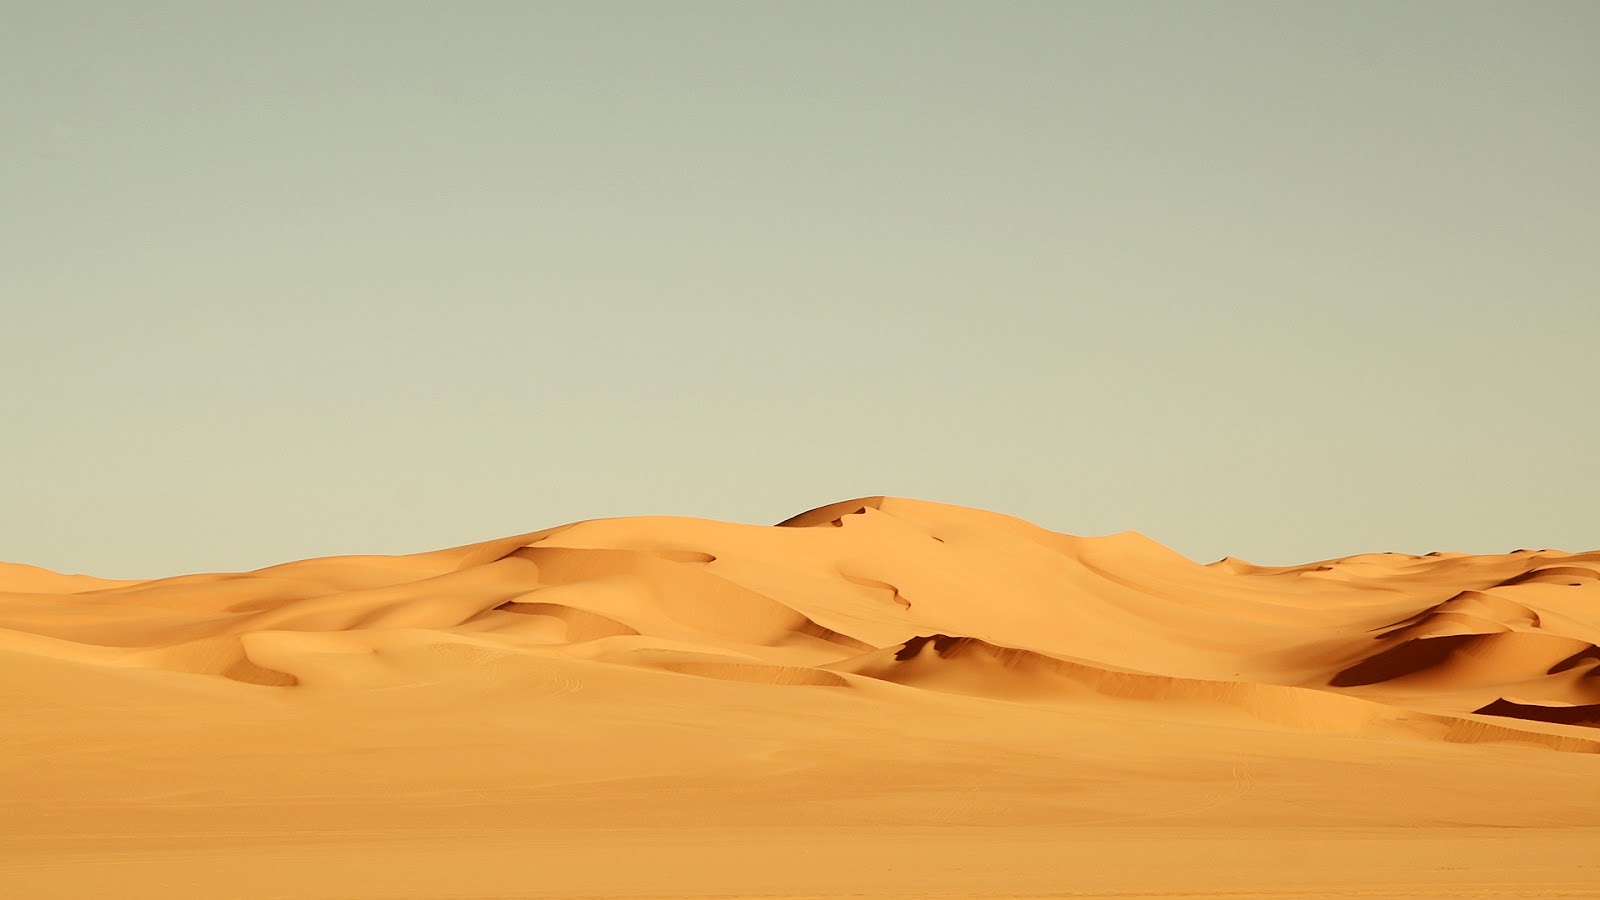 Real deset nature new xp wallpapers pc laptop mobile walls for Wallpaper mobile home walls